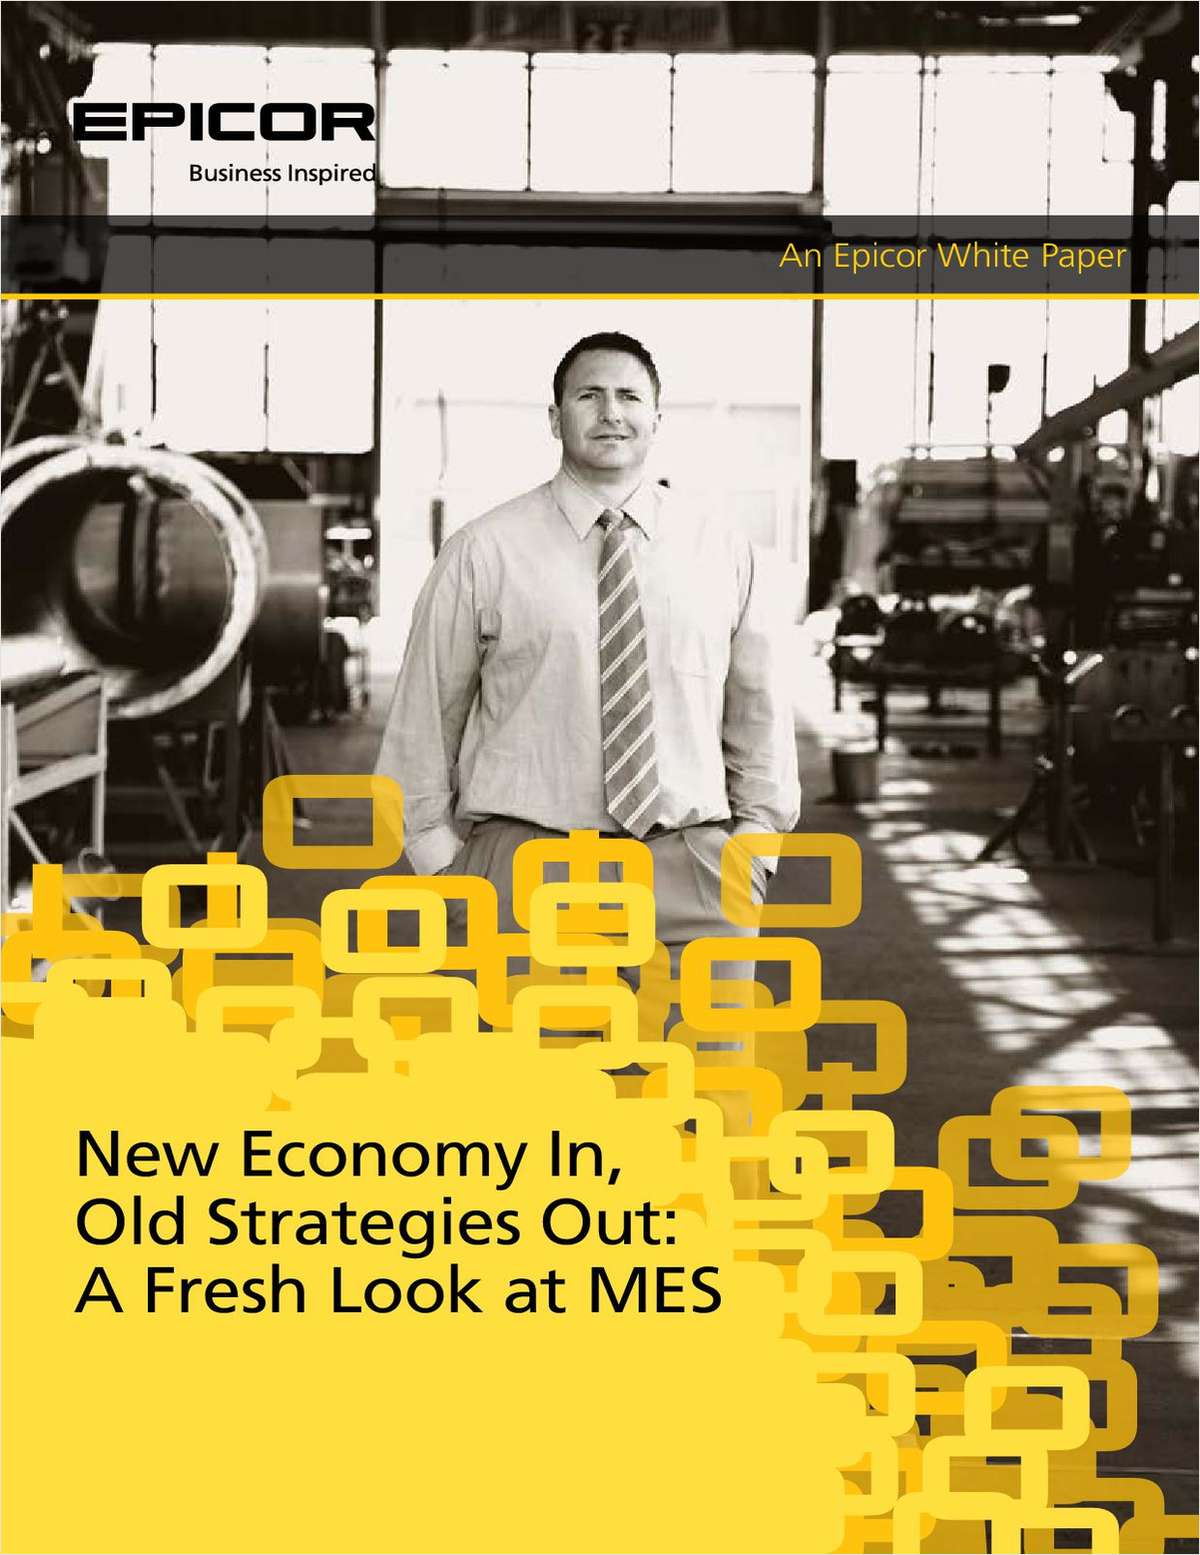 New Economy In, Old Strategies Out: A Fresh Look at MES